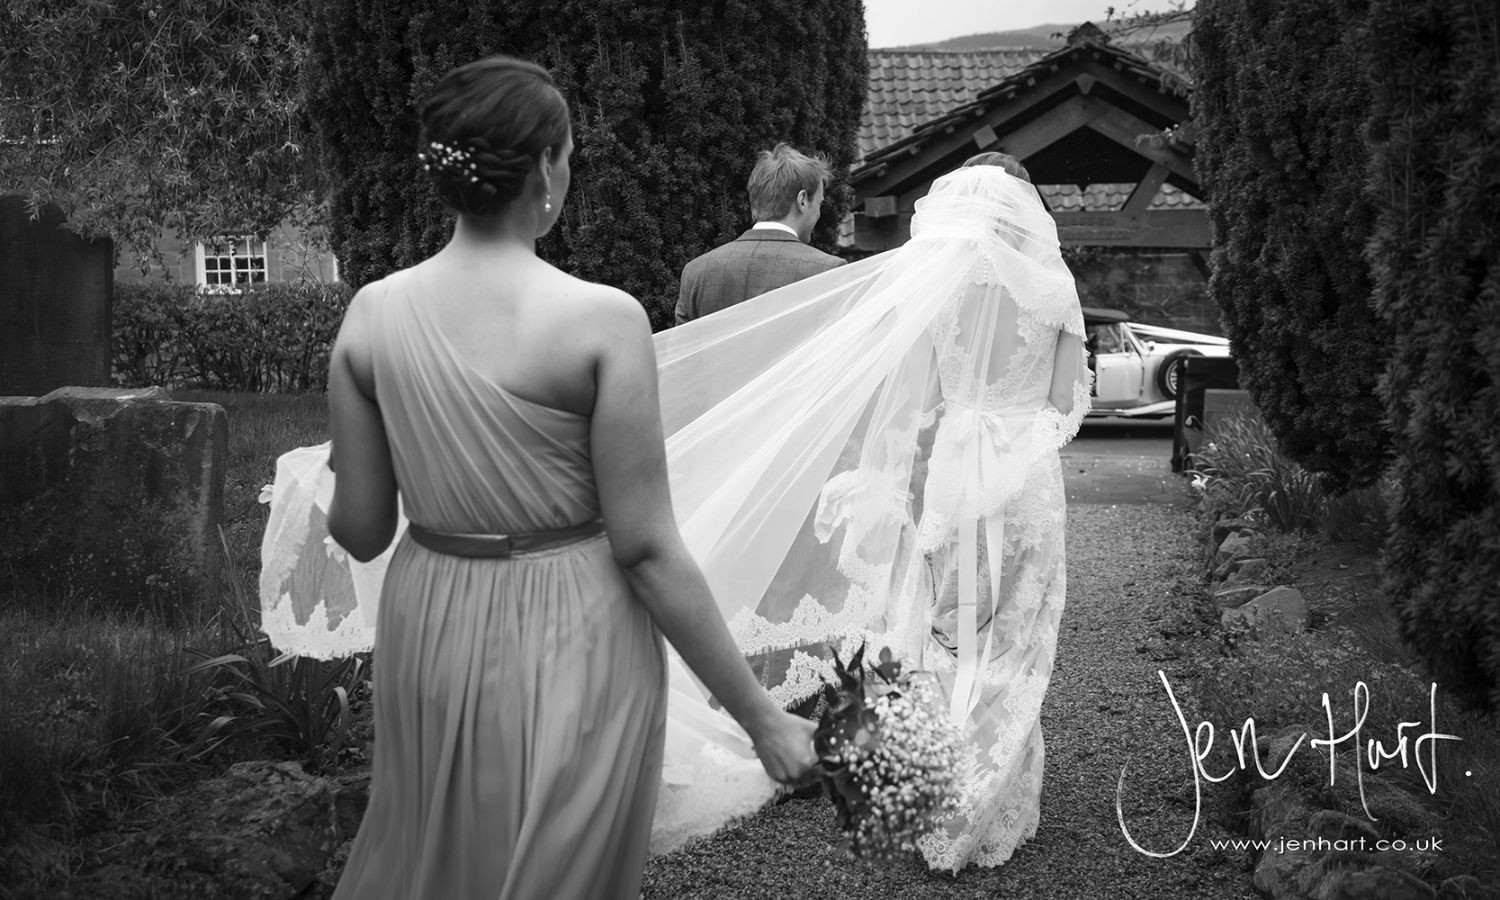 Photograph-Wedding-Whinstone-View_02May15_152